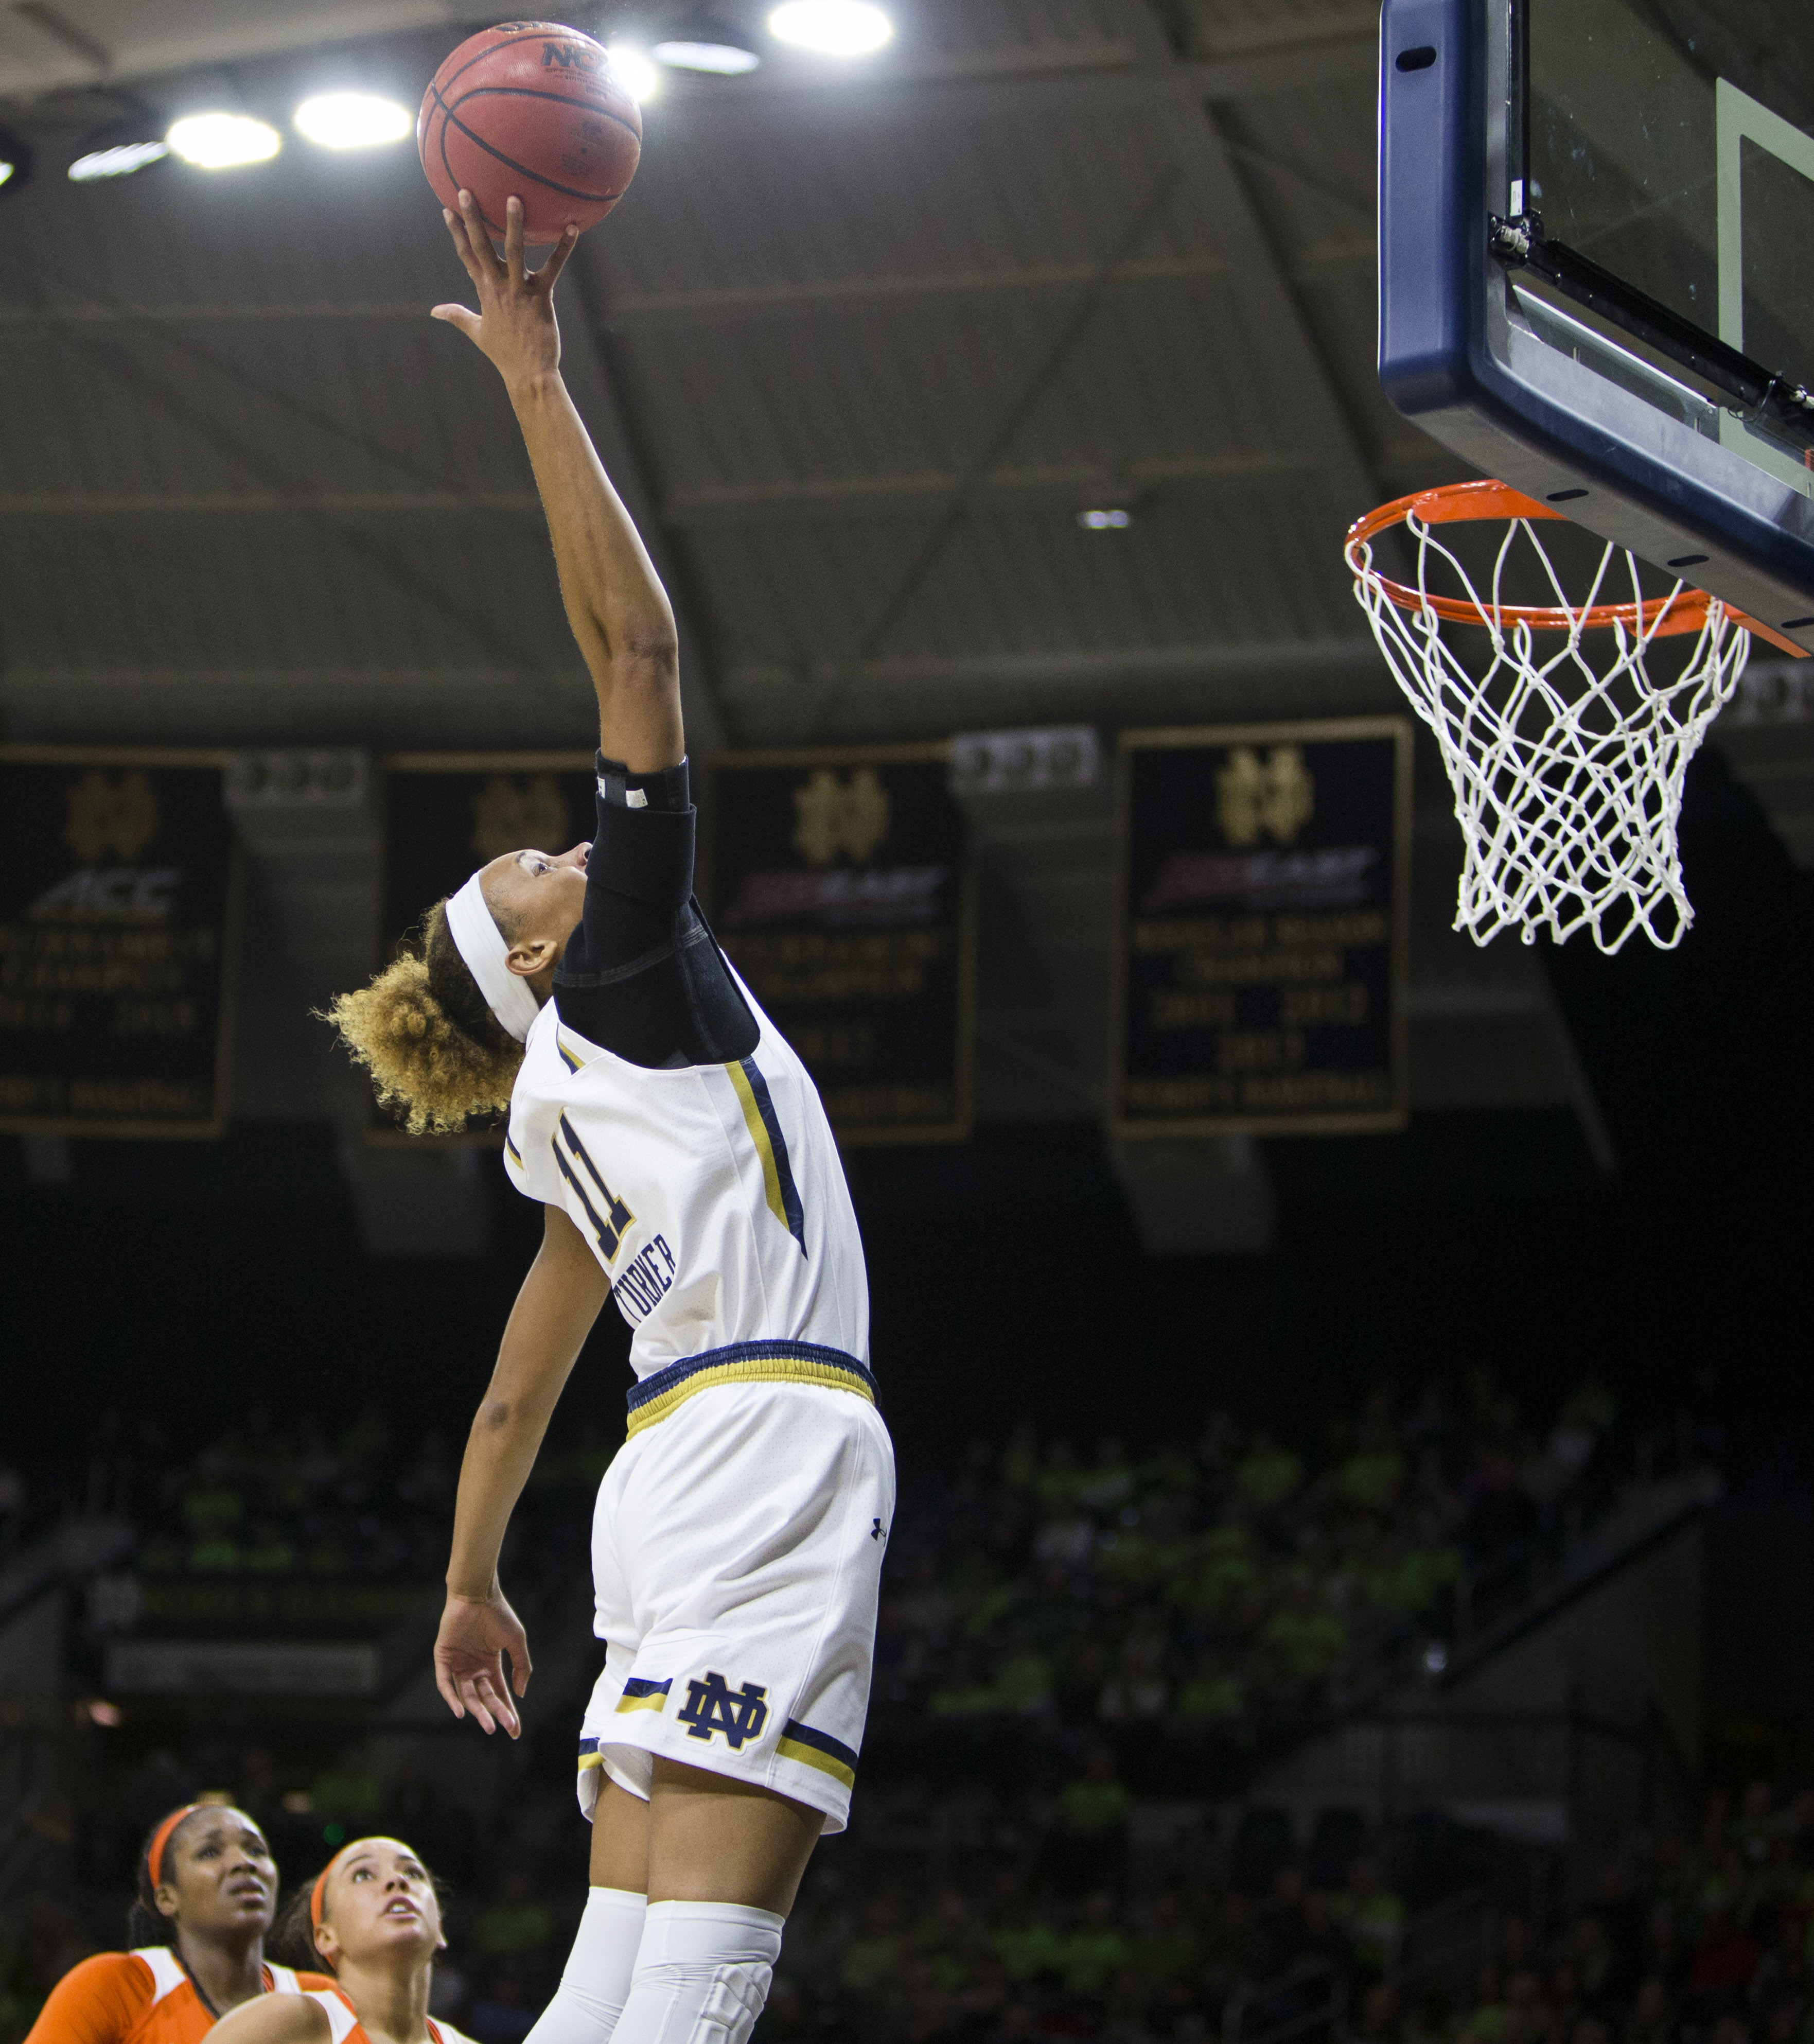 Notre Dame's Brianna Turner (11) jumps high for a tipped pass during the first half of an NCAA college basketball game against Clemson on Thursday, Feb. 25, 2016, in South Bend, Ind. (AP Photo/Robert Franklin)